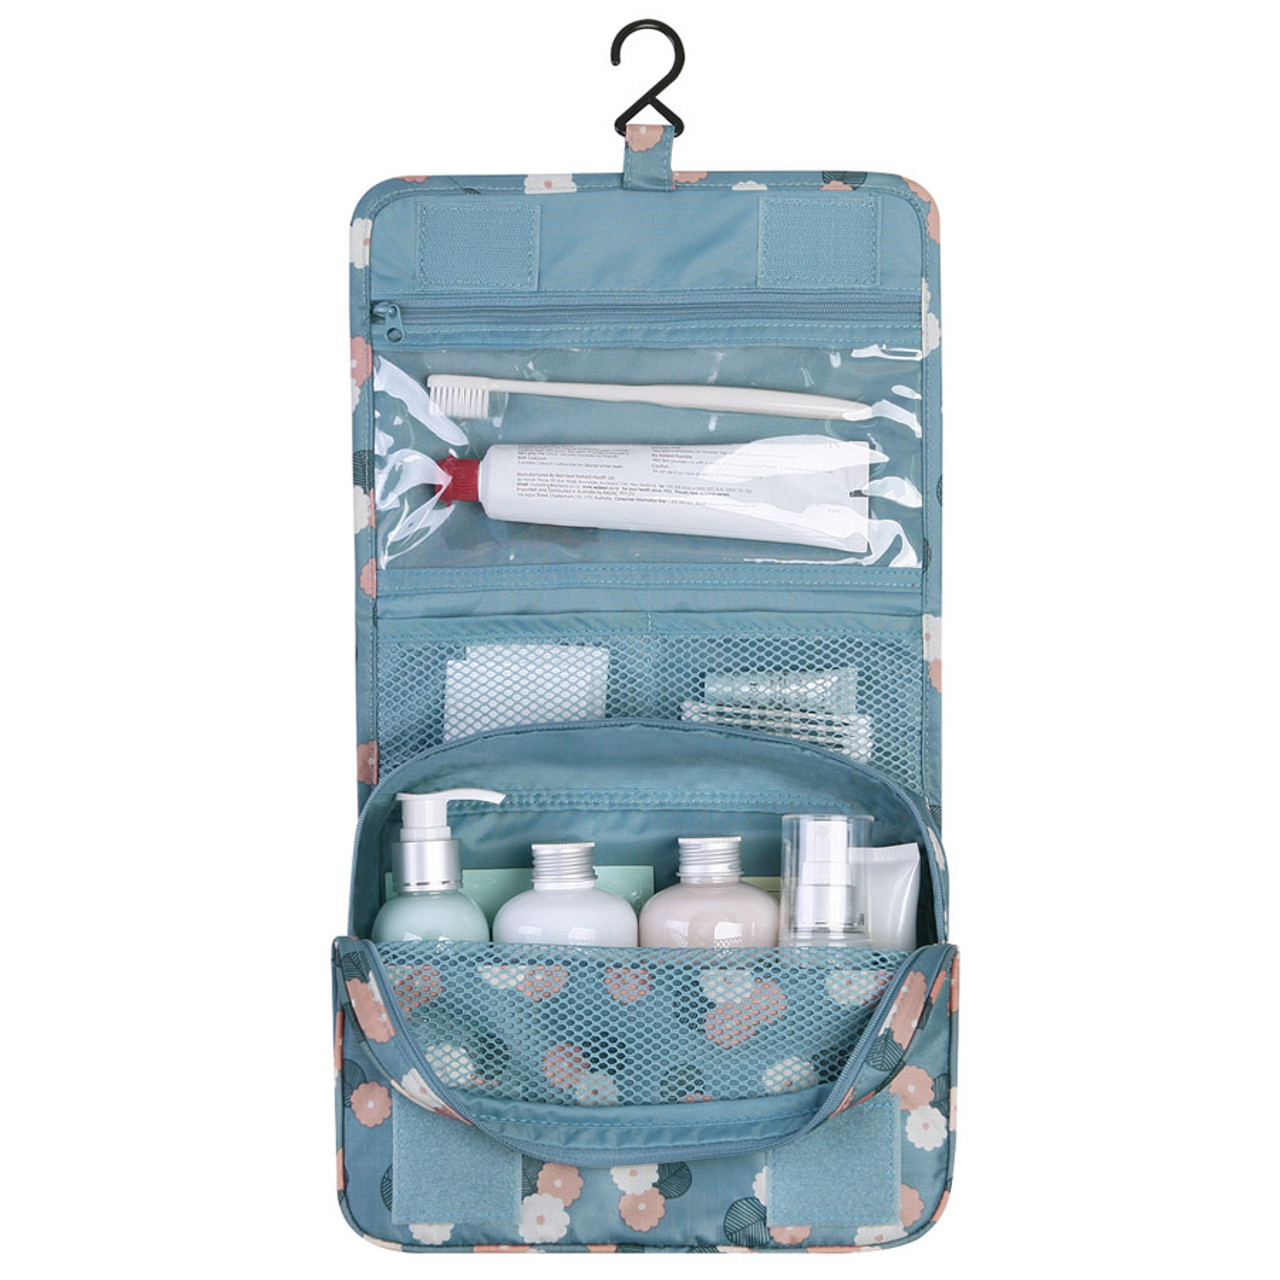 Monopoly Pattern travel hanging toiletry pouch bag - fallindesign